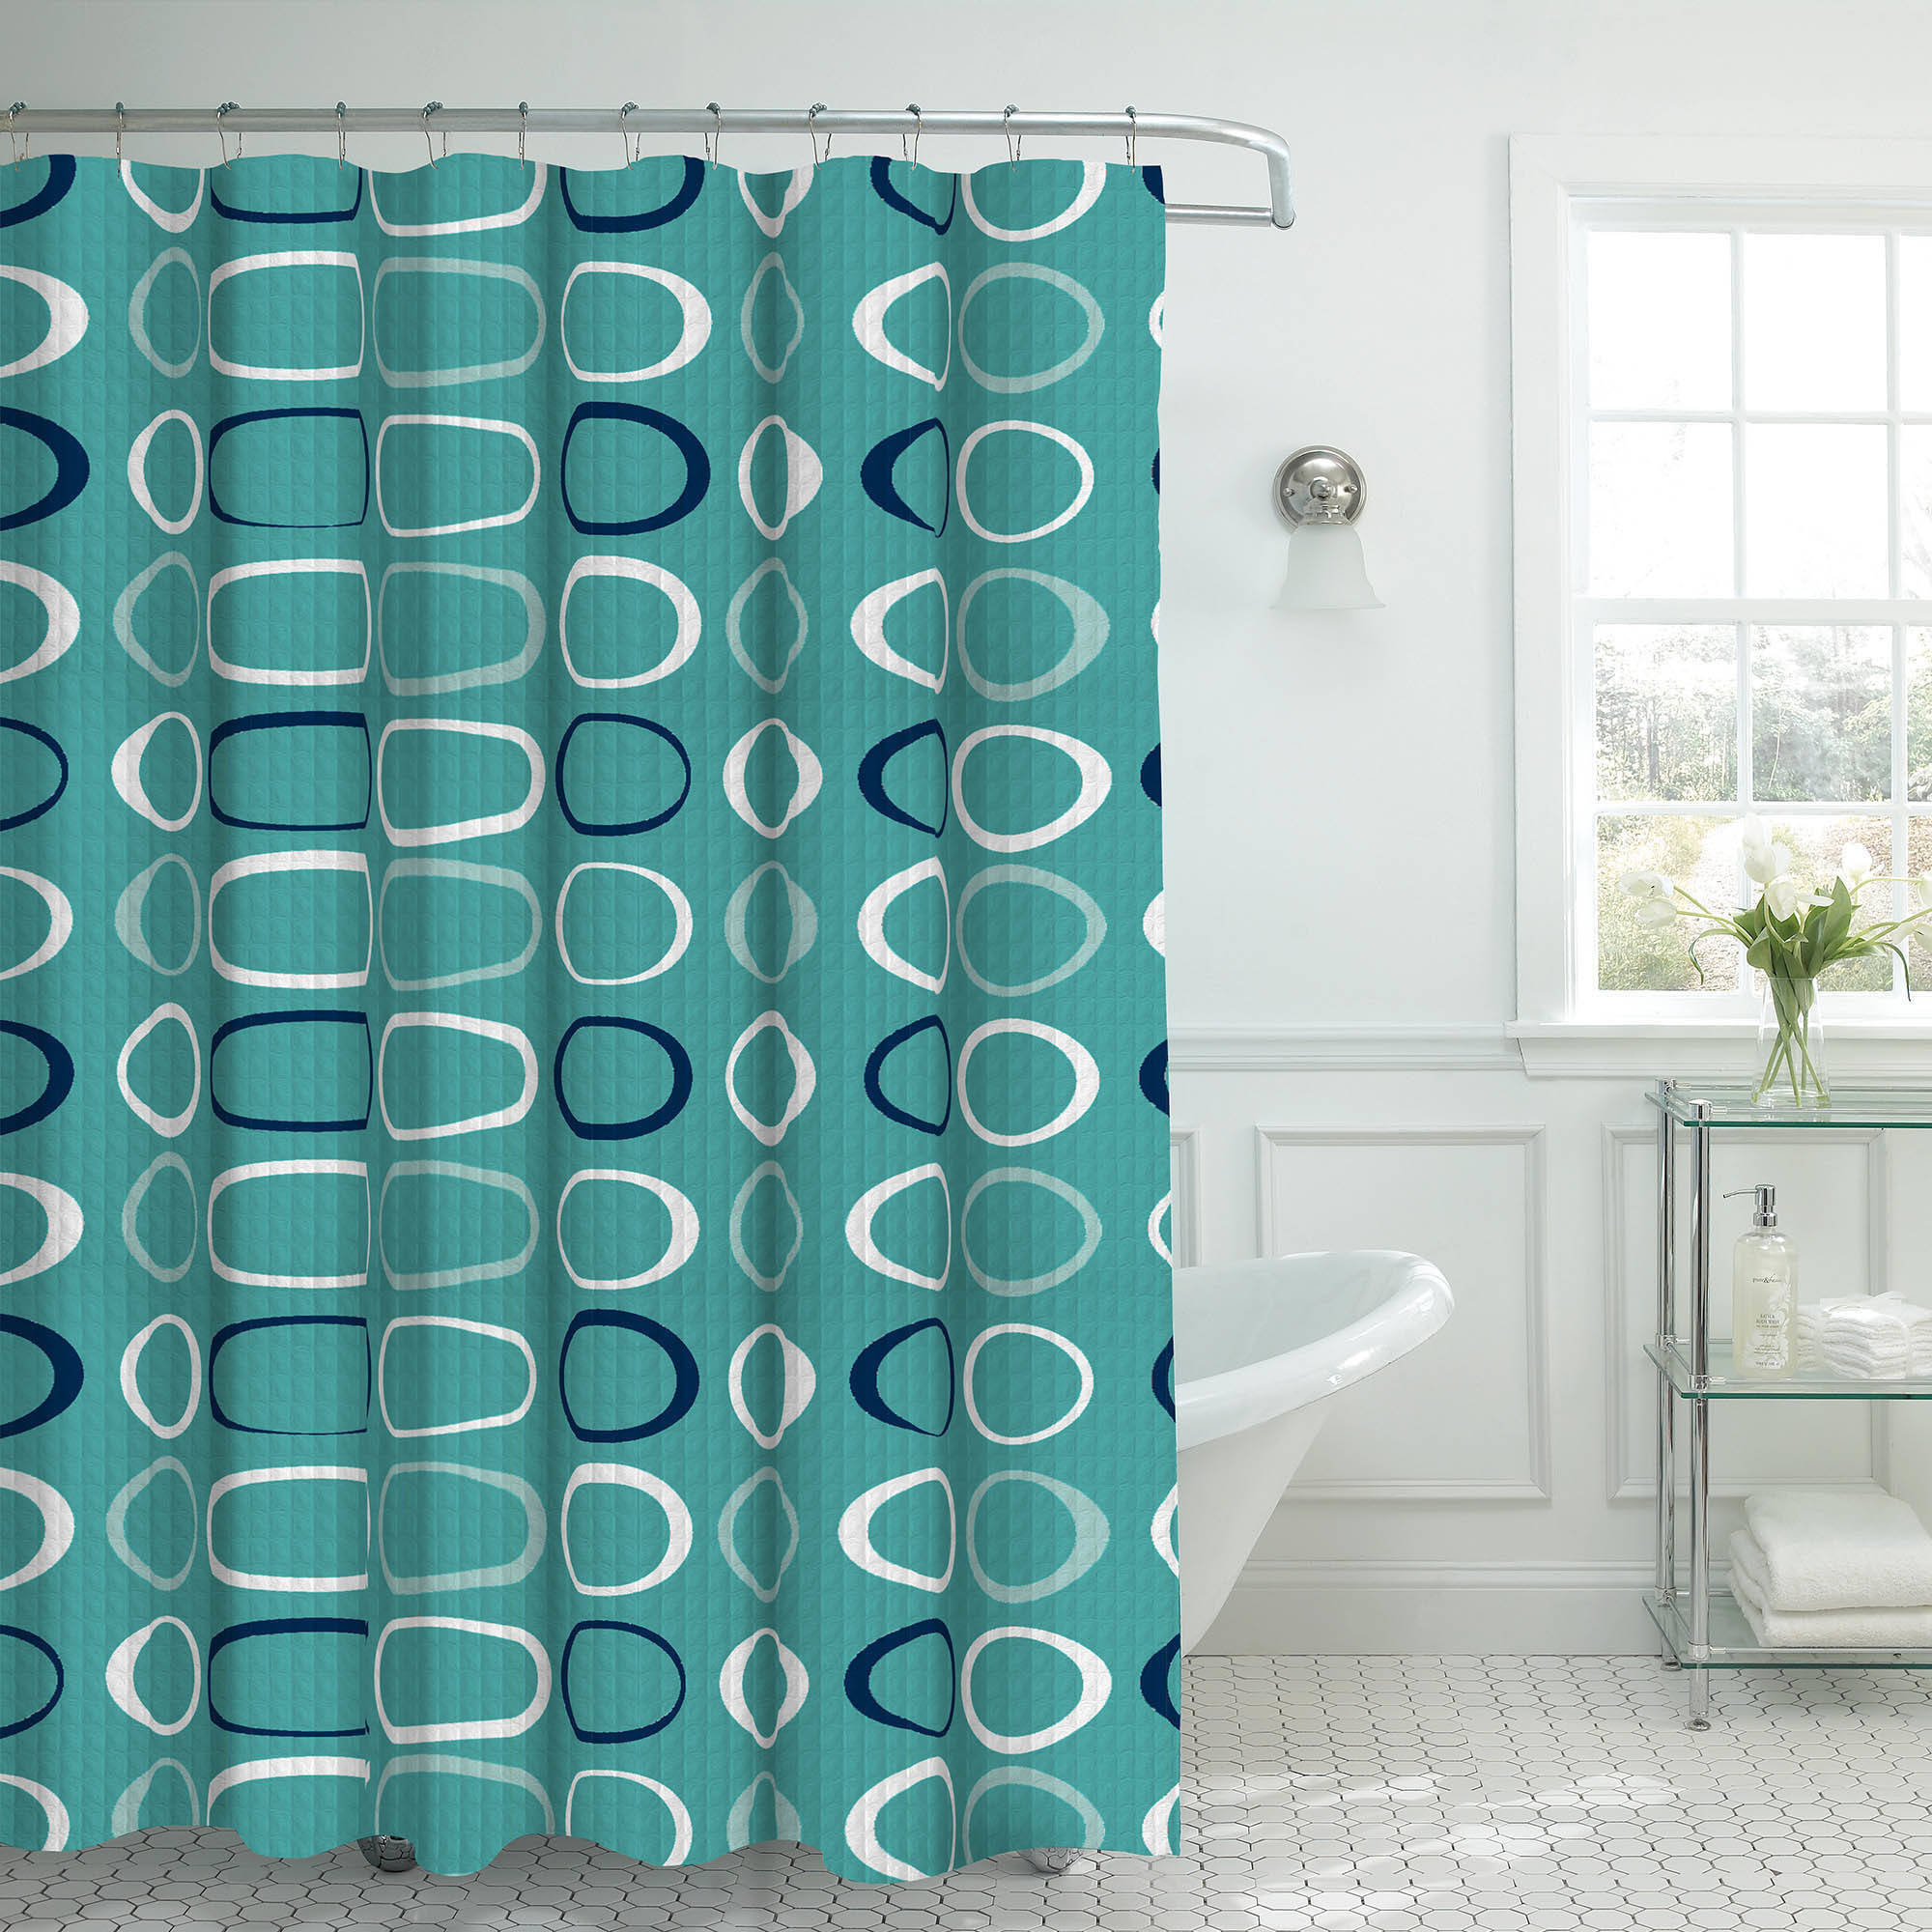 Bounce Comfort Oxford Weave Textured 13-Piece Shower Curtain Set with Metal Roller Hooks, Terrell Blue